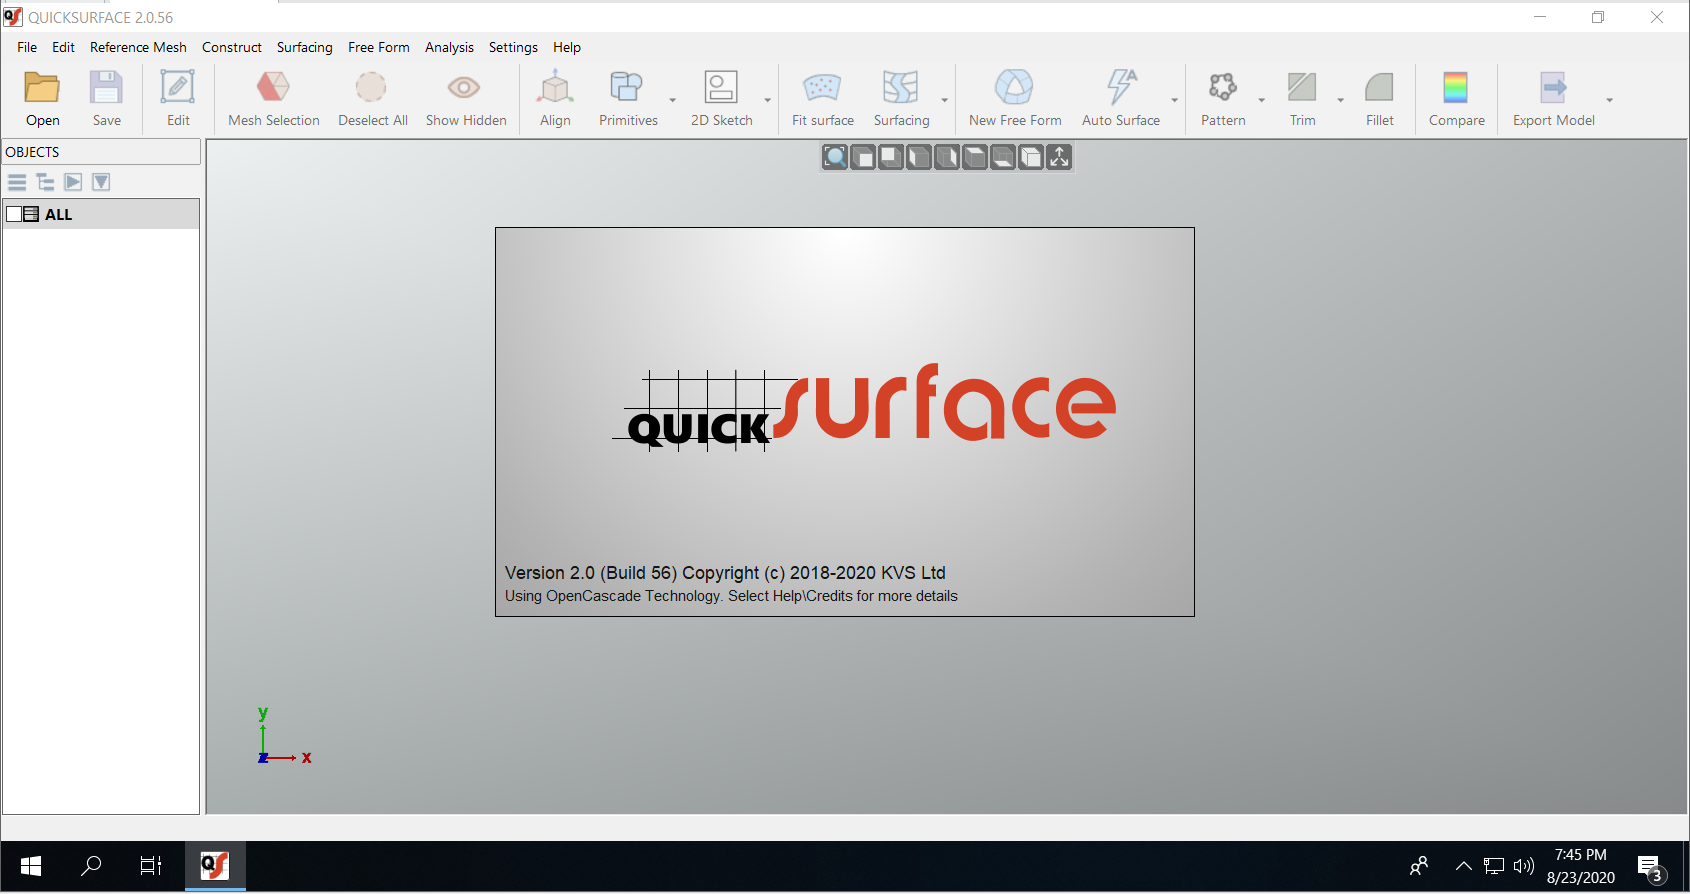 Working with QUICKSURFACE 2.0.56 (2056) full license